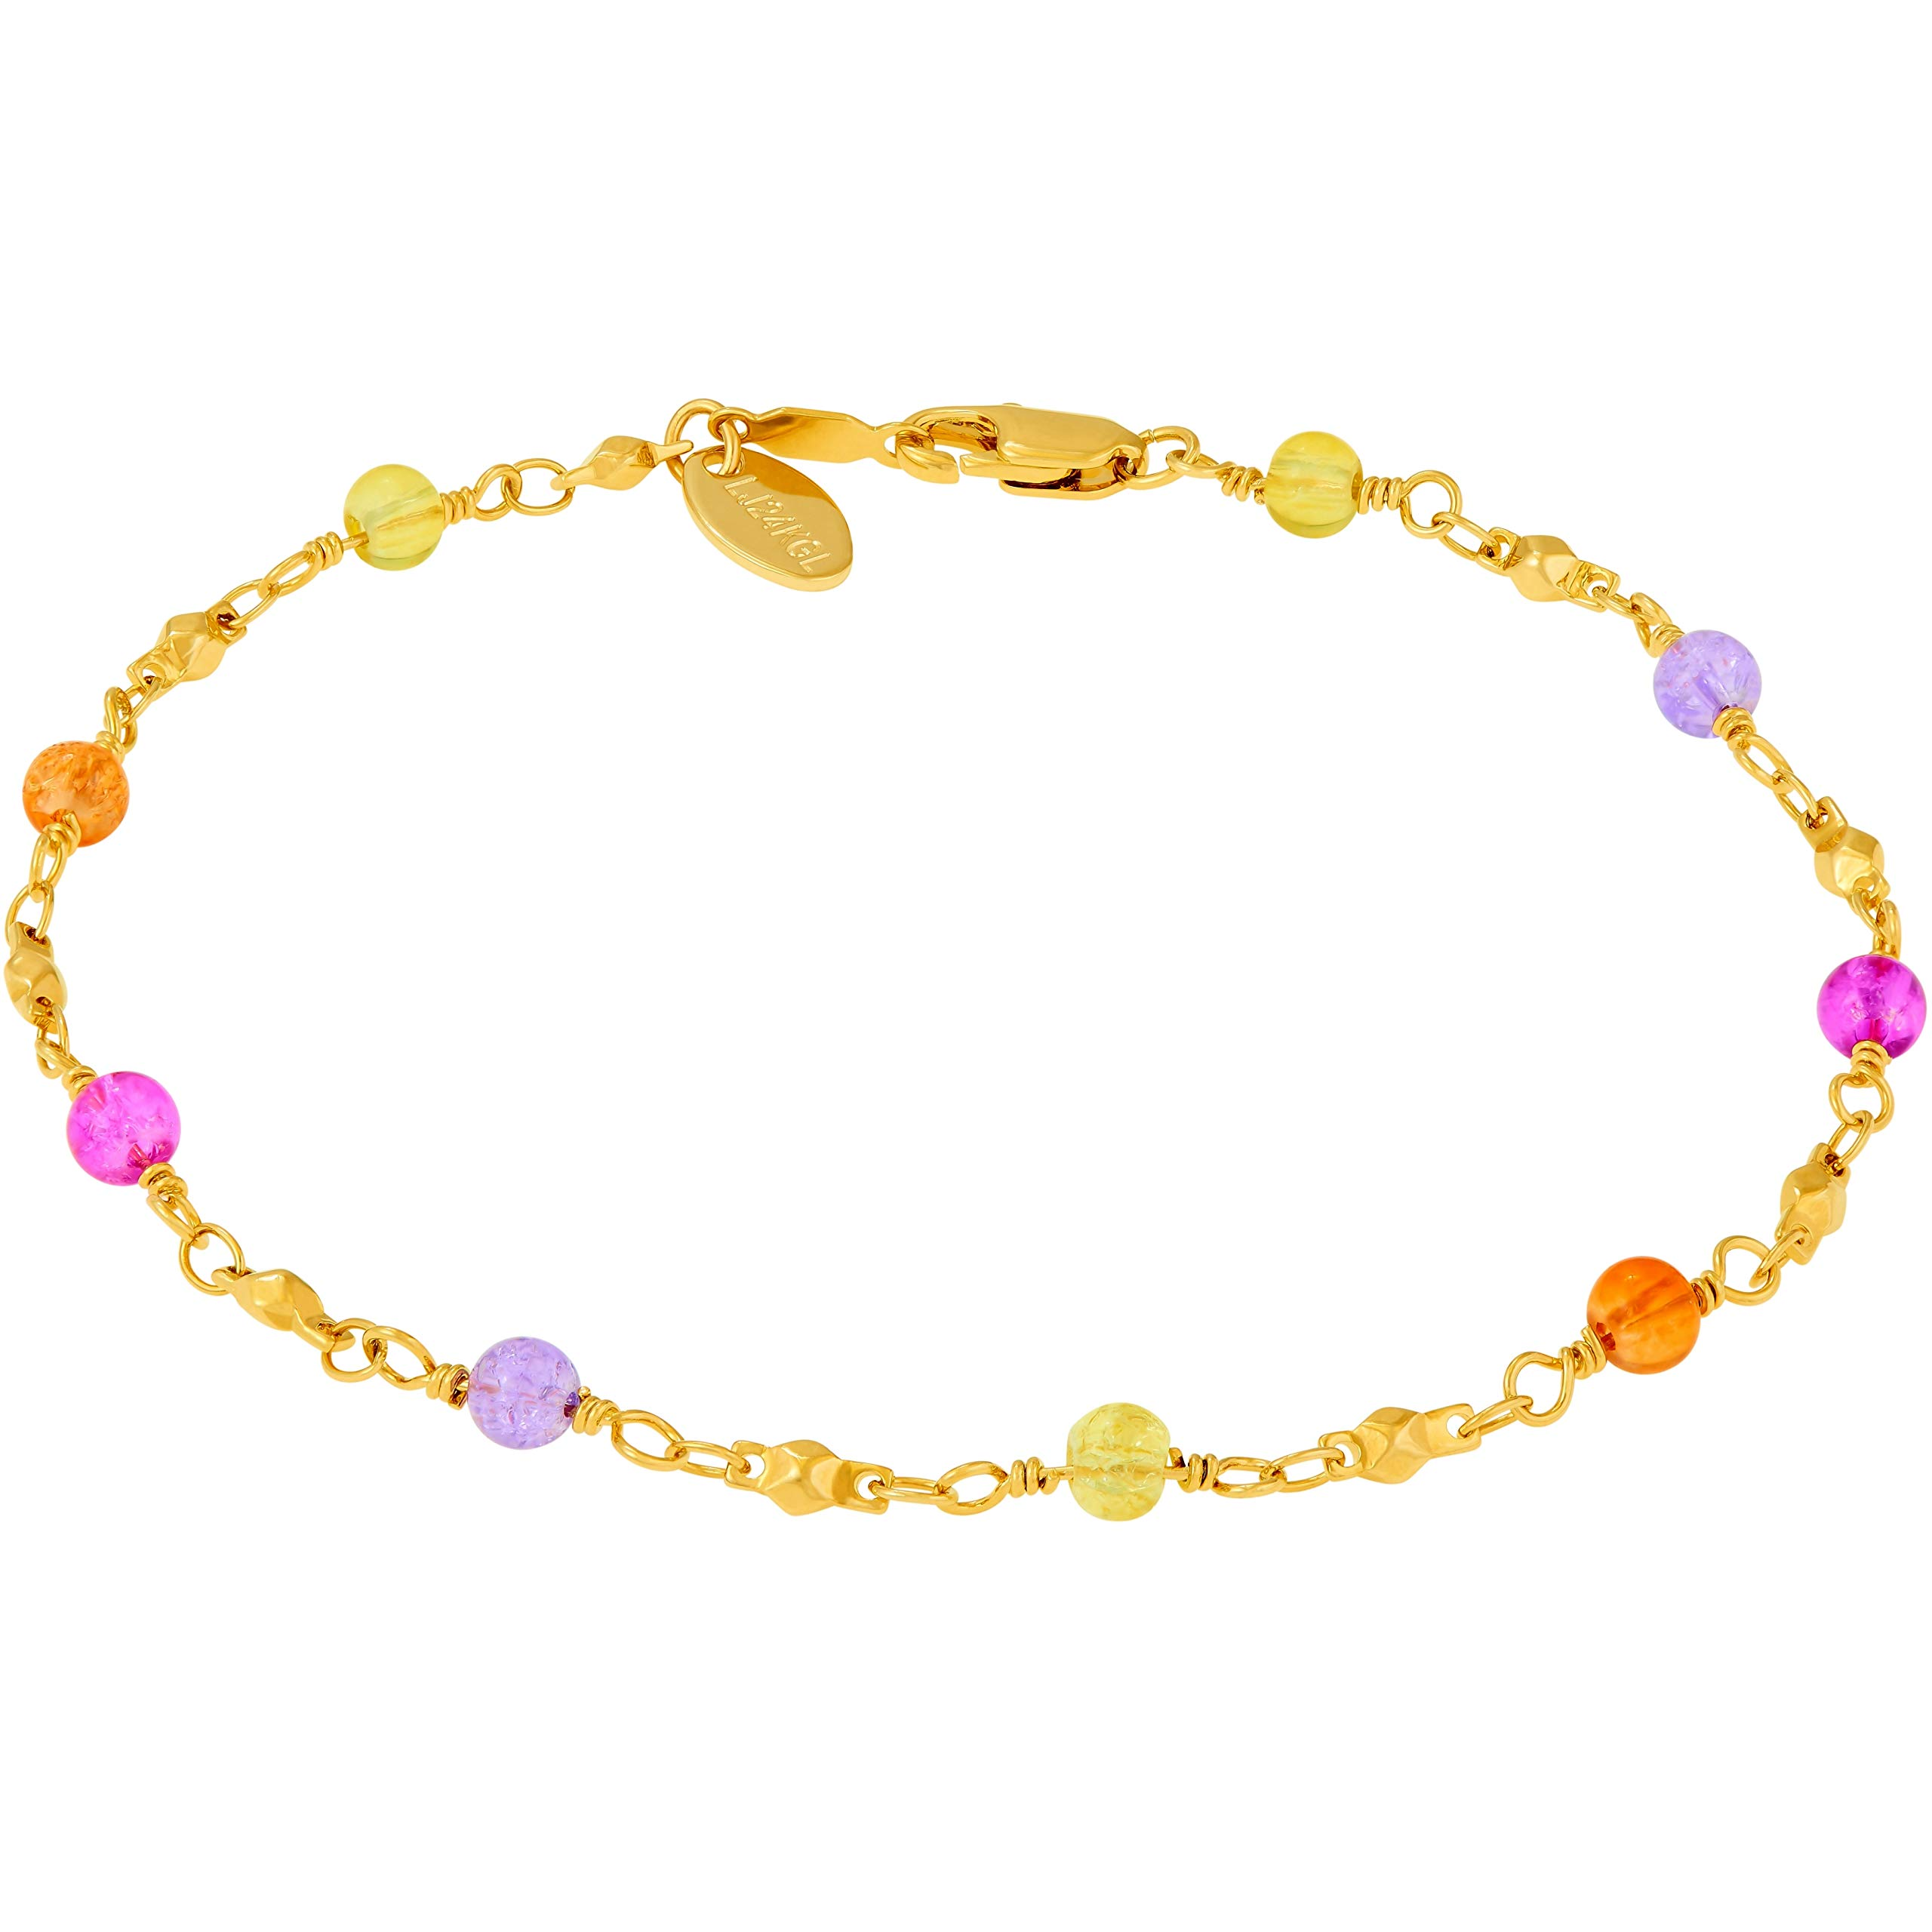 Lifetime Jewelry Ankle Bracelets for Women & Teen Girls [ Durable & Cute Colorful Balls Gold Anklet ] up to 20x More 24k Plating Than Other Foot Jewelry - Lifetime Replacement Guarantee (11.0) by Lifetime Jewelry (Image #1)